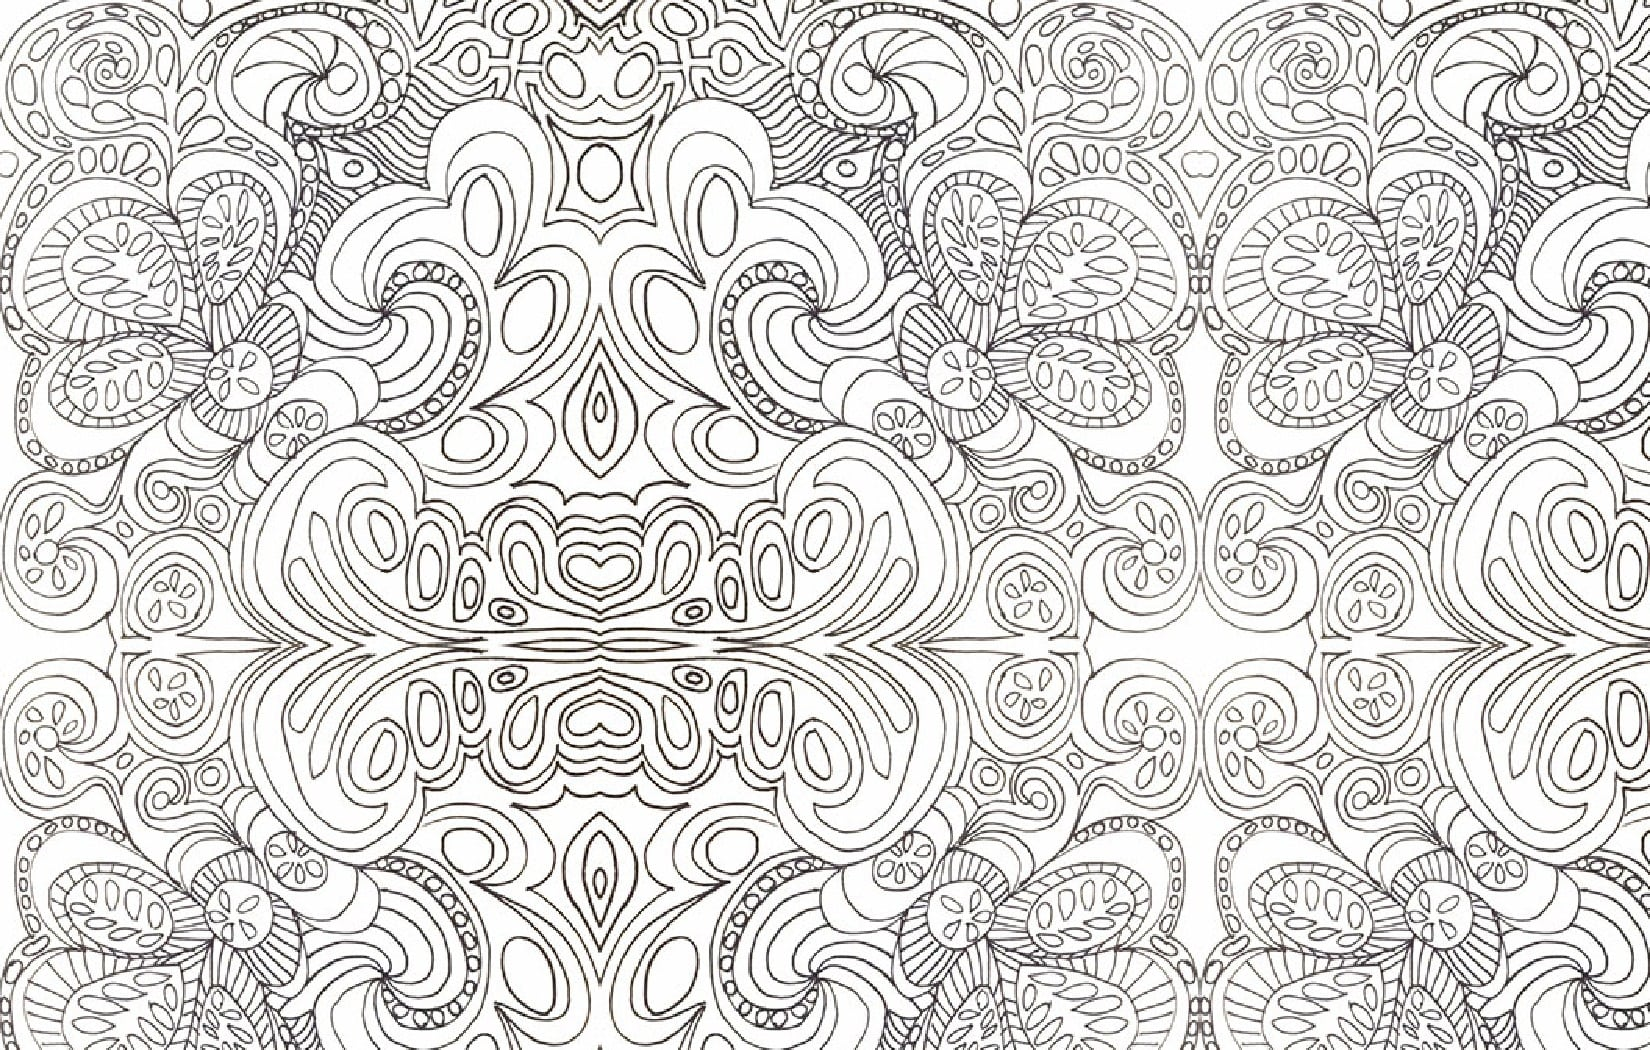 Psychedelic Coloring Pages To Download And Print For Free